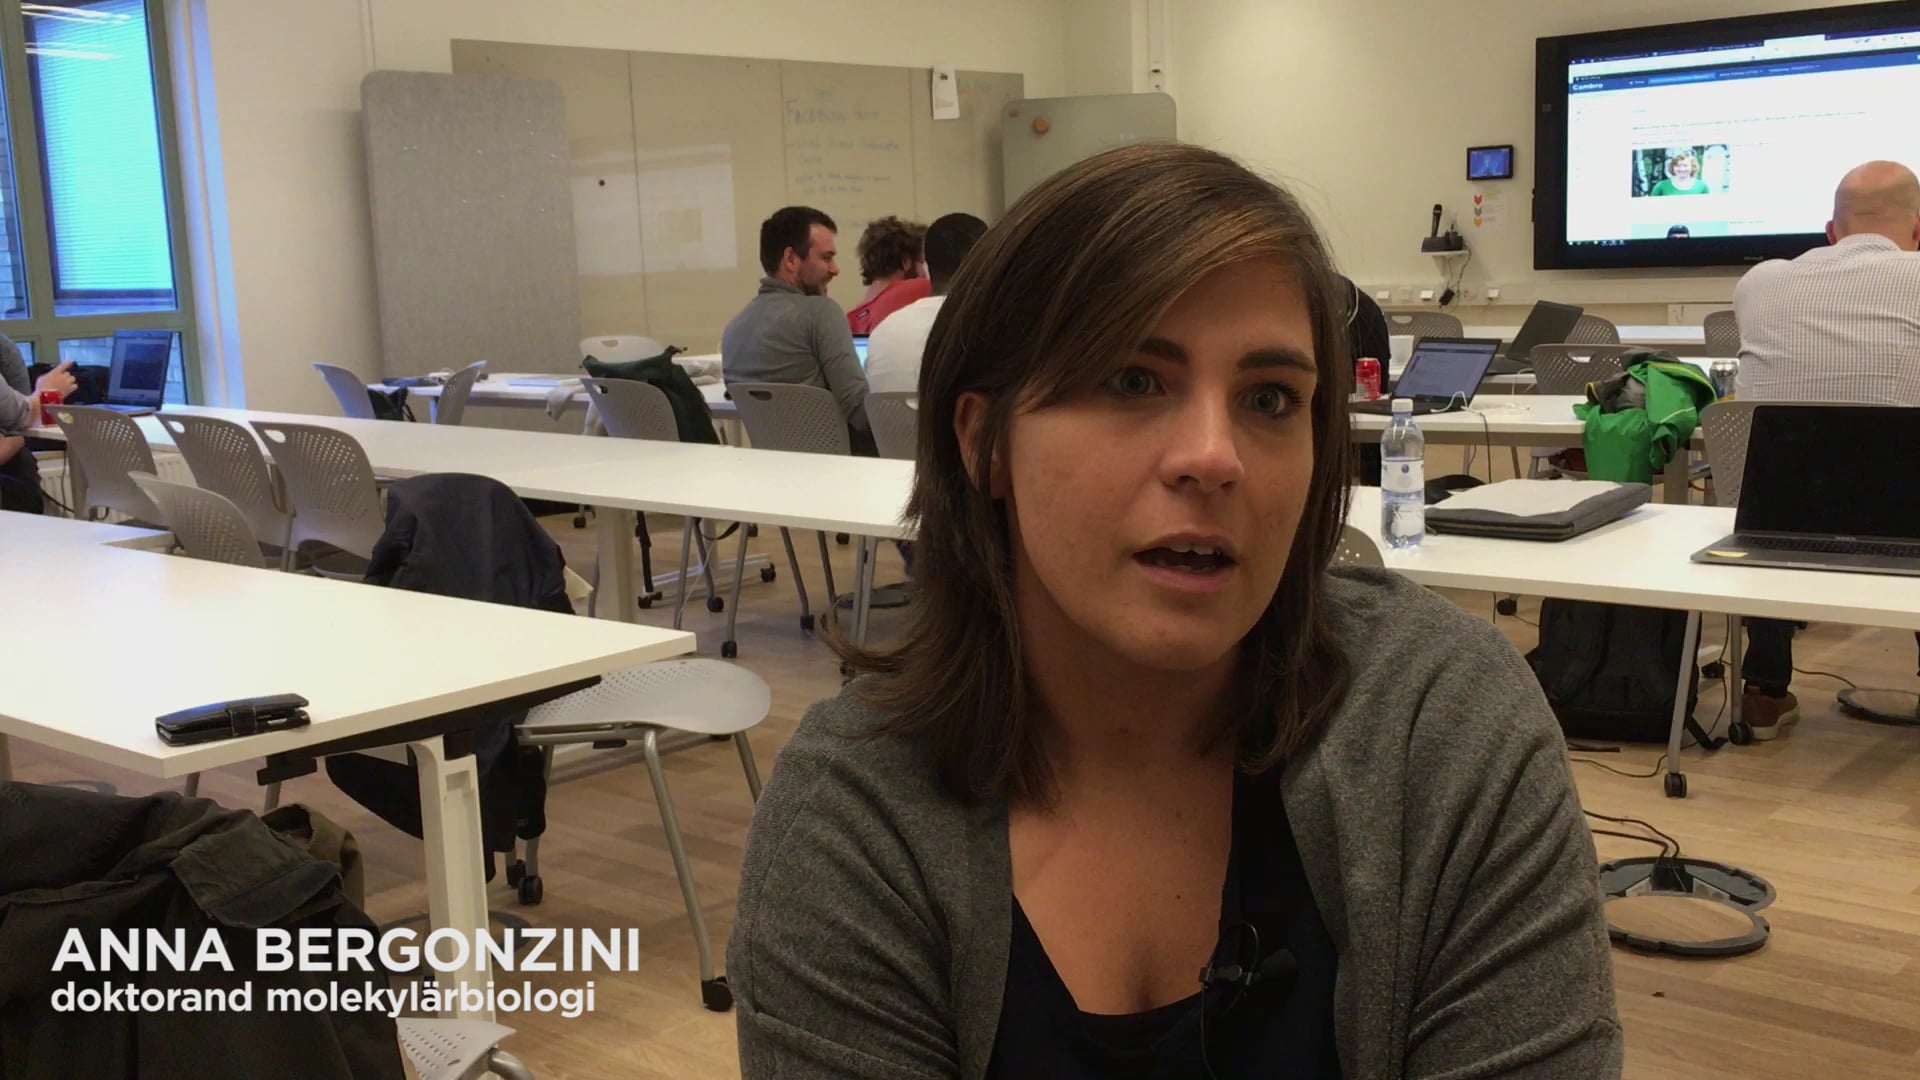 Film: Science communication for doctoral students